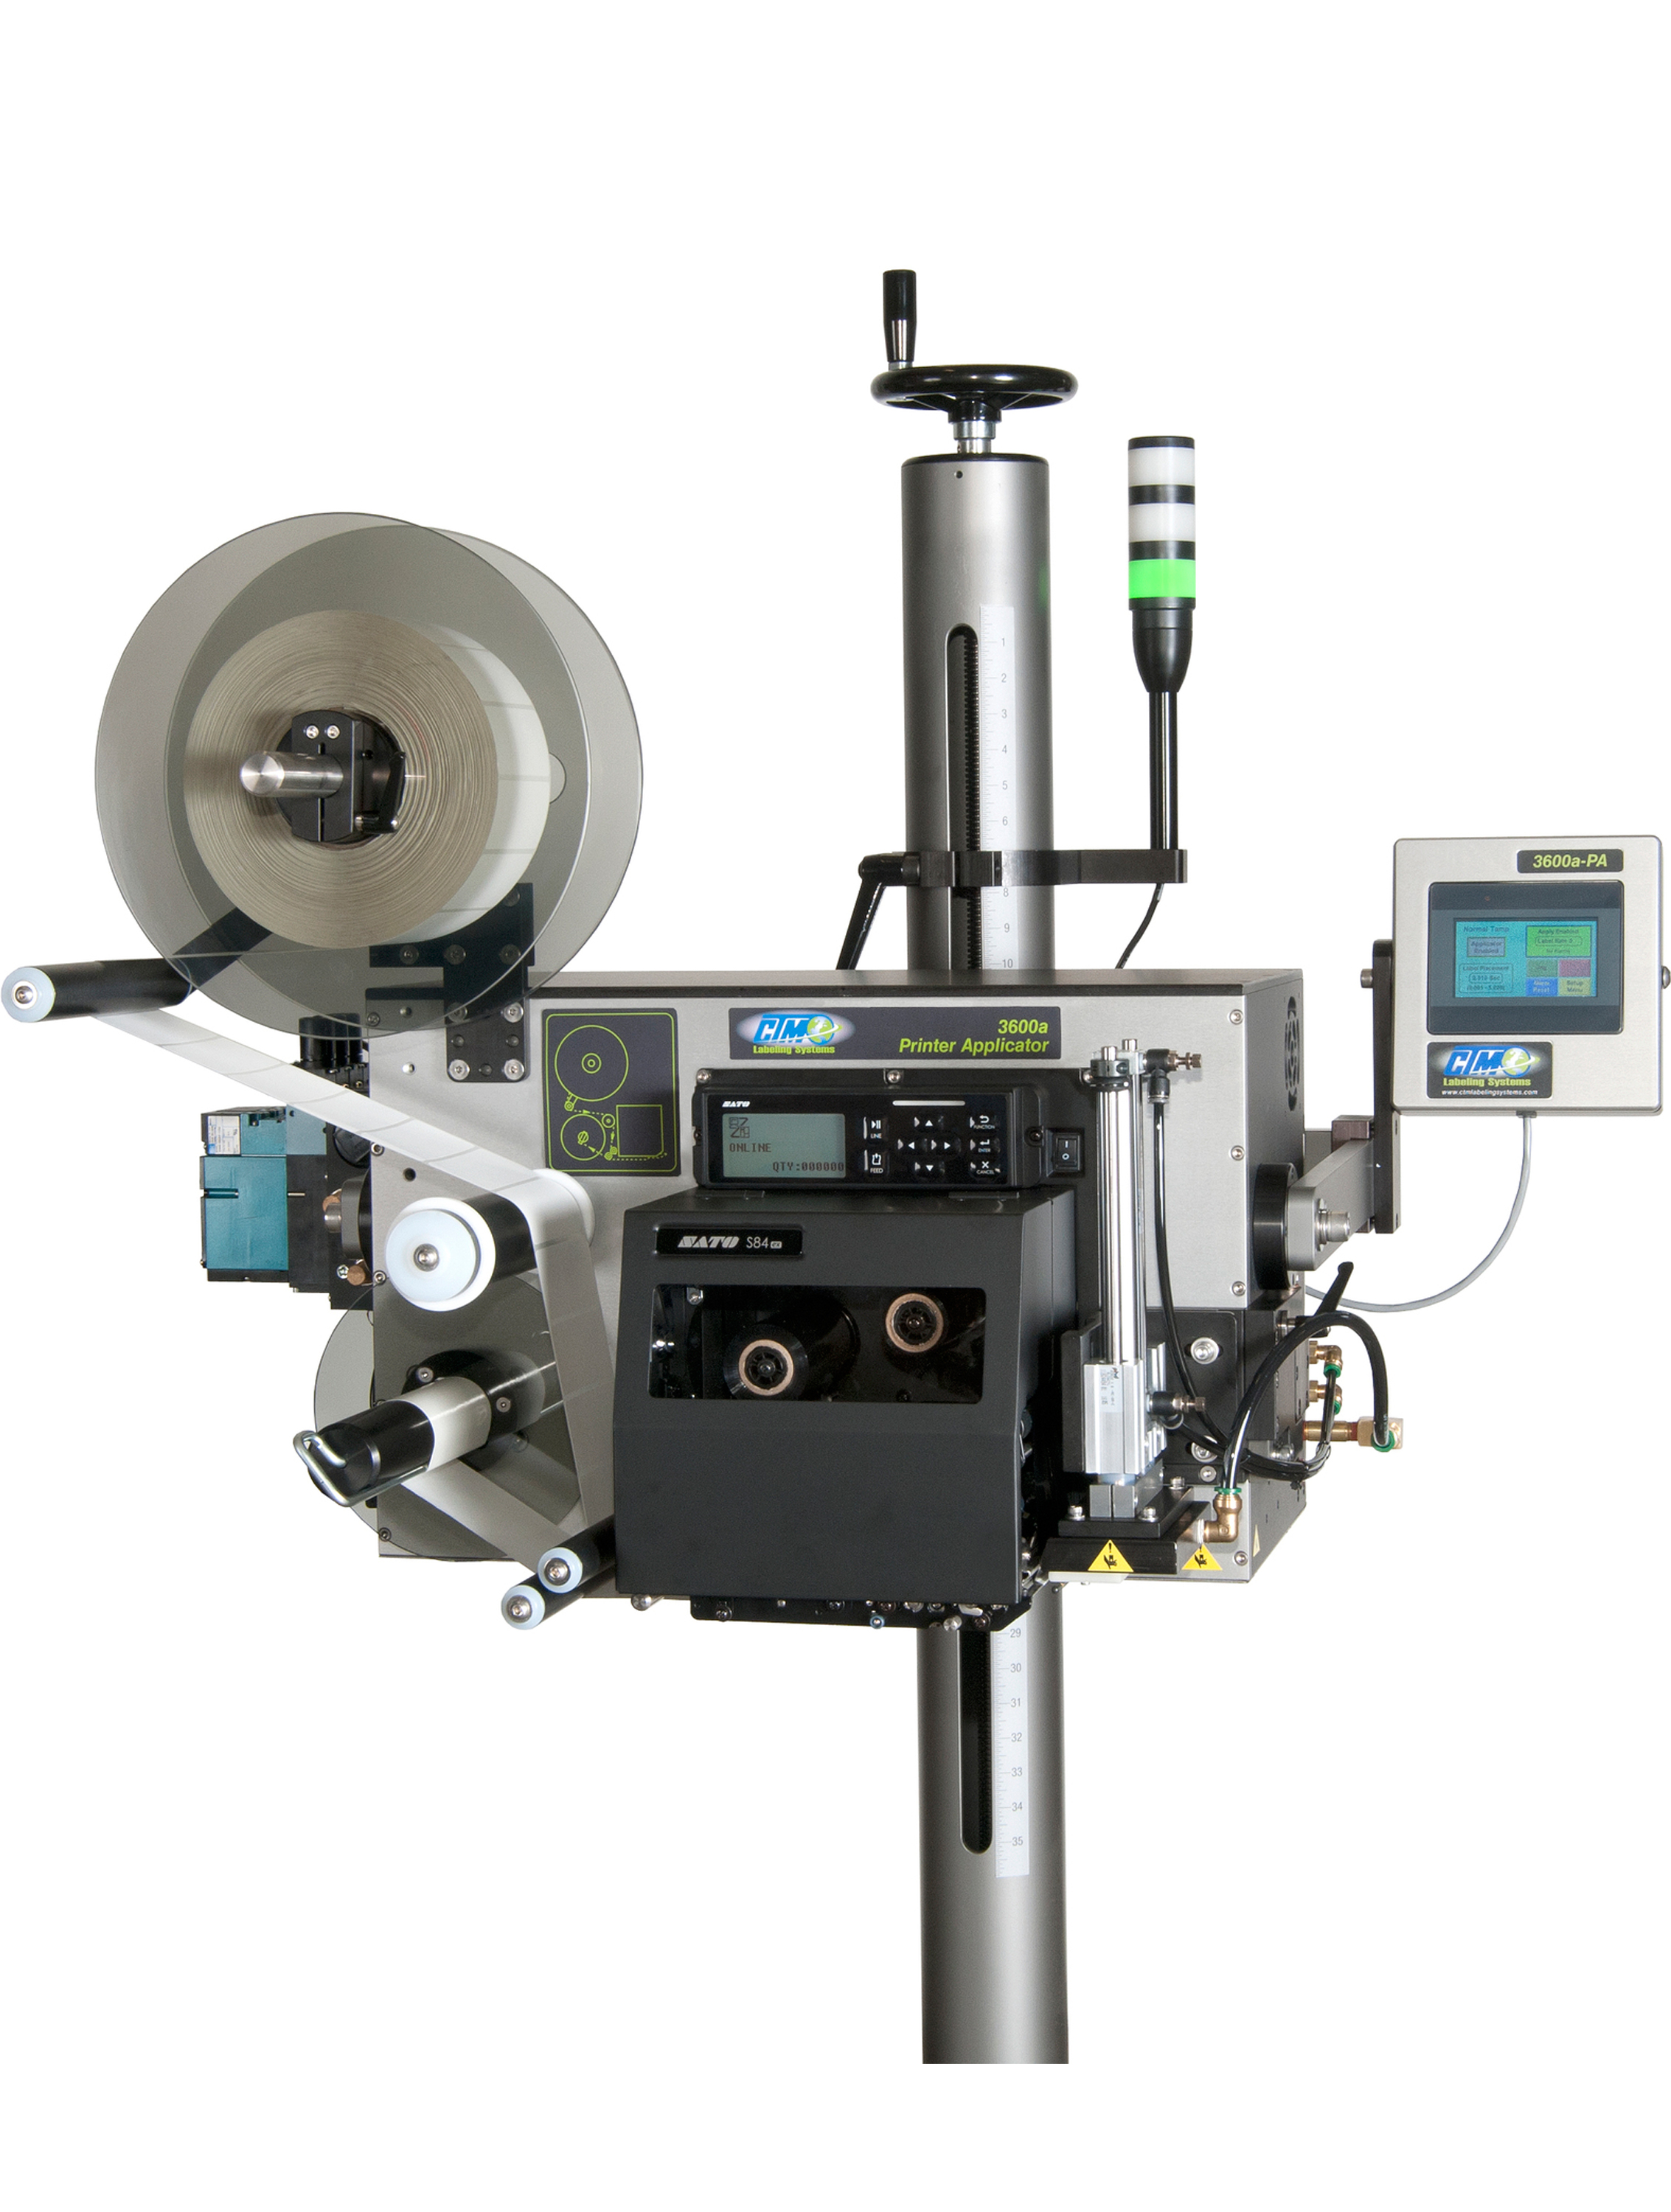 CTM Labeling Systems' 3600a-PA Printer Applicator